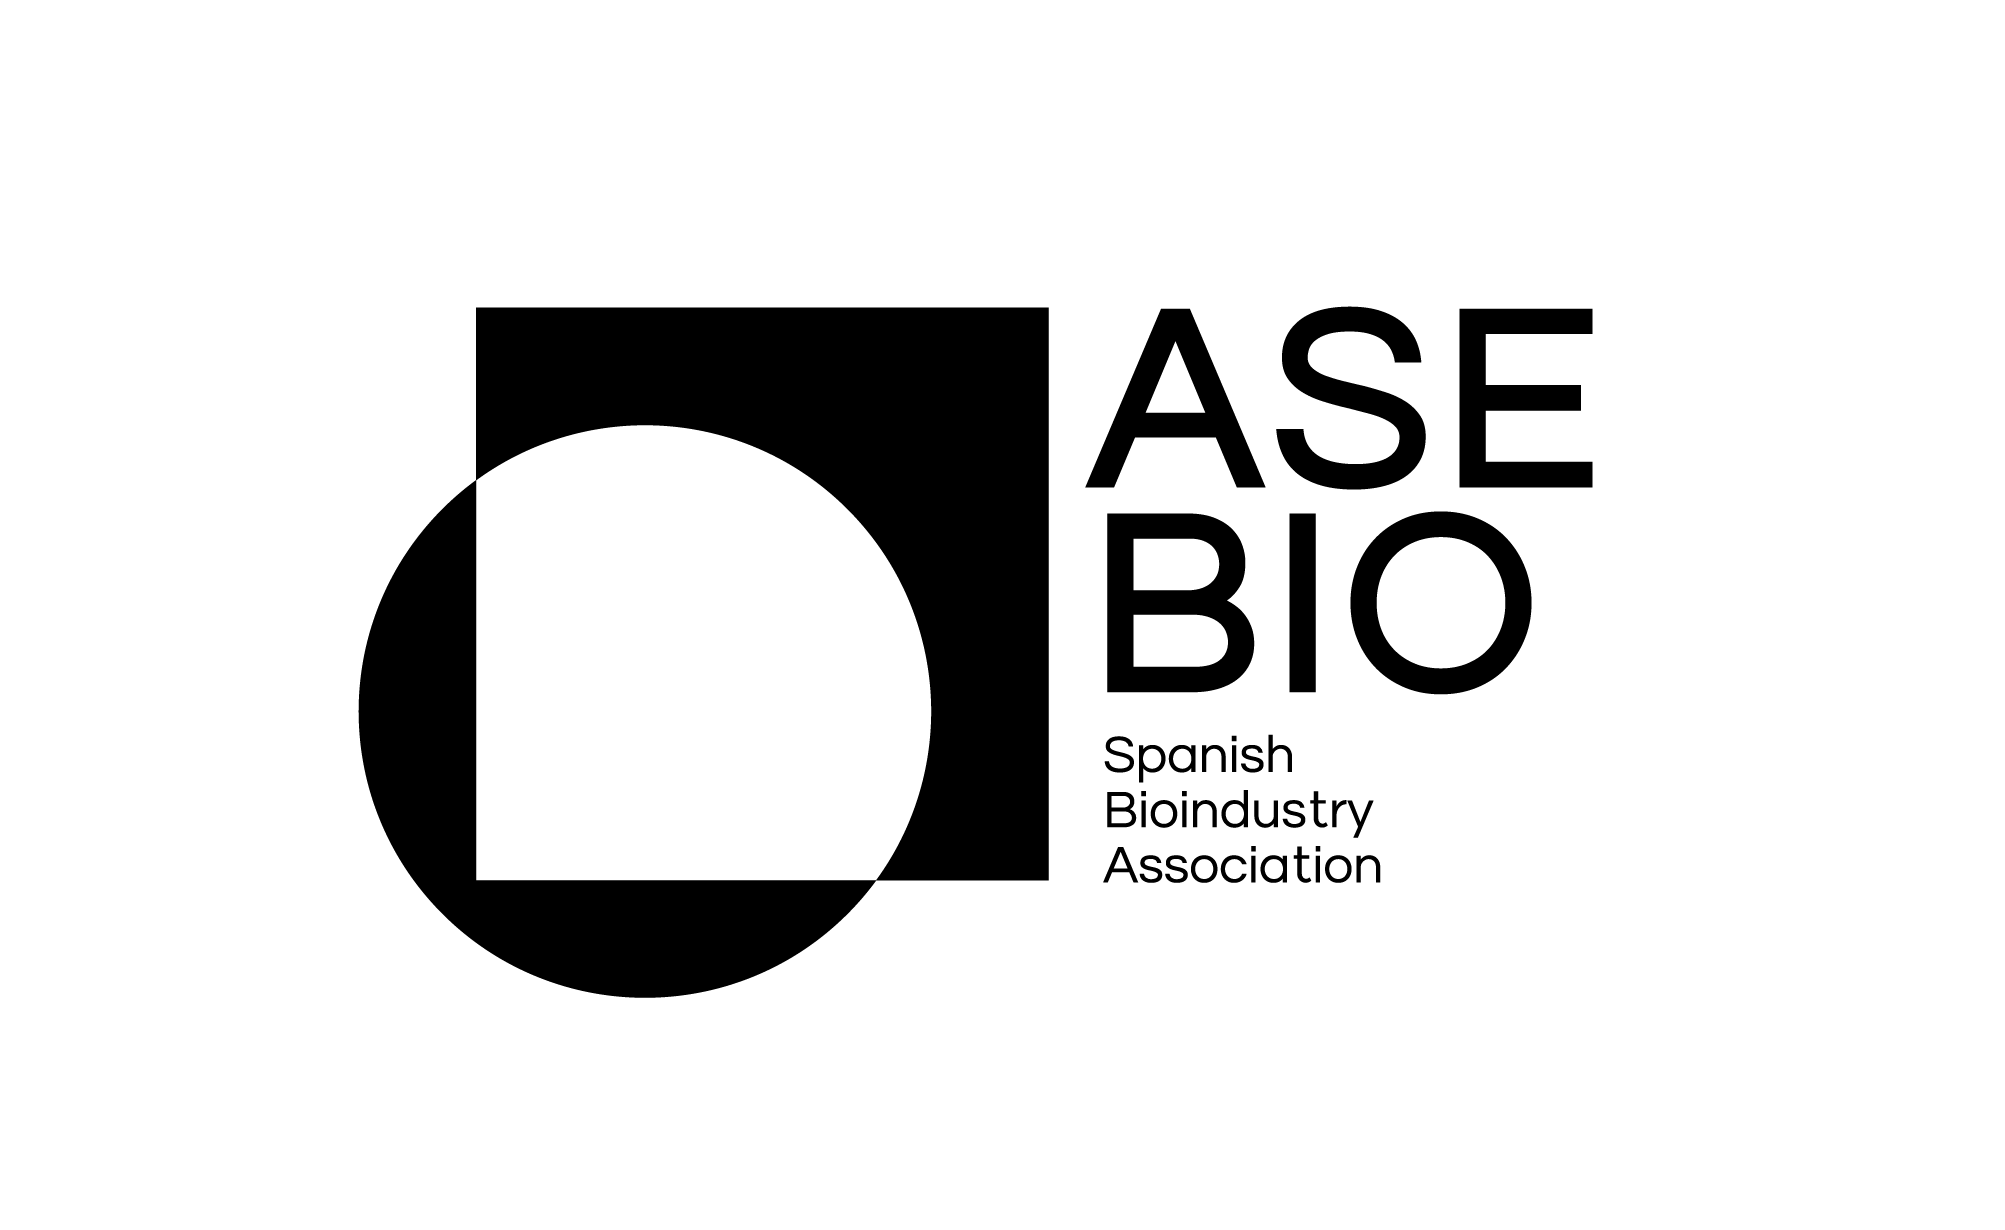 asebio-spanish-bioindustry-association